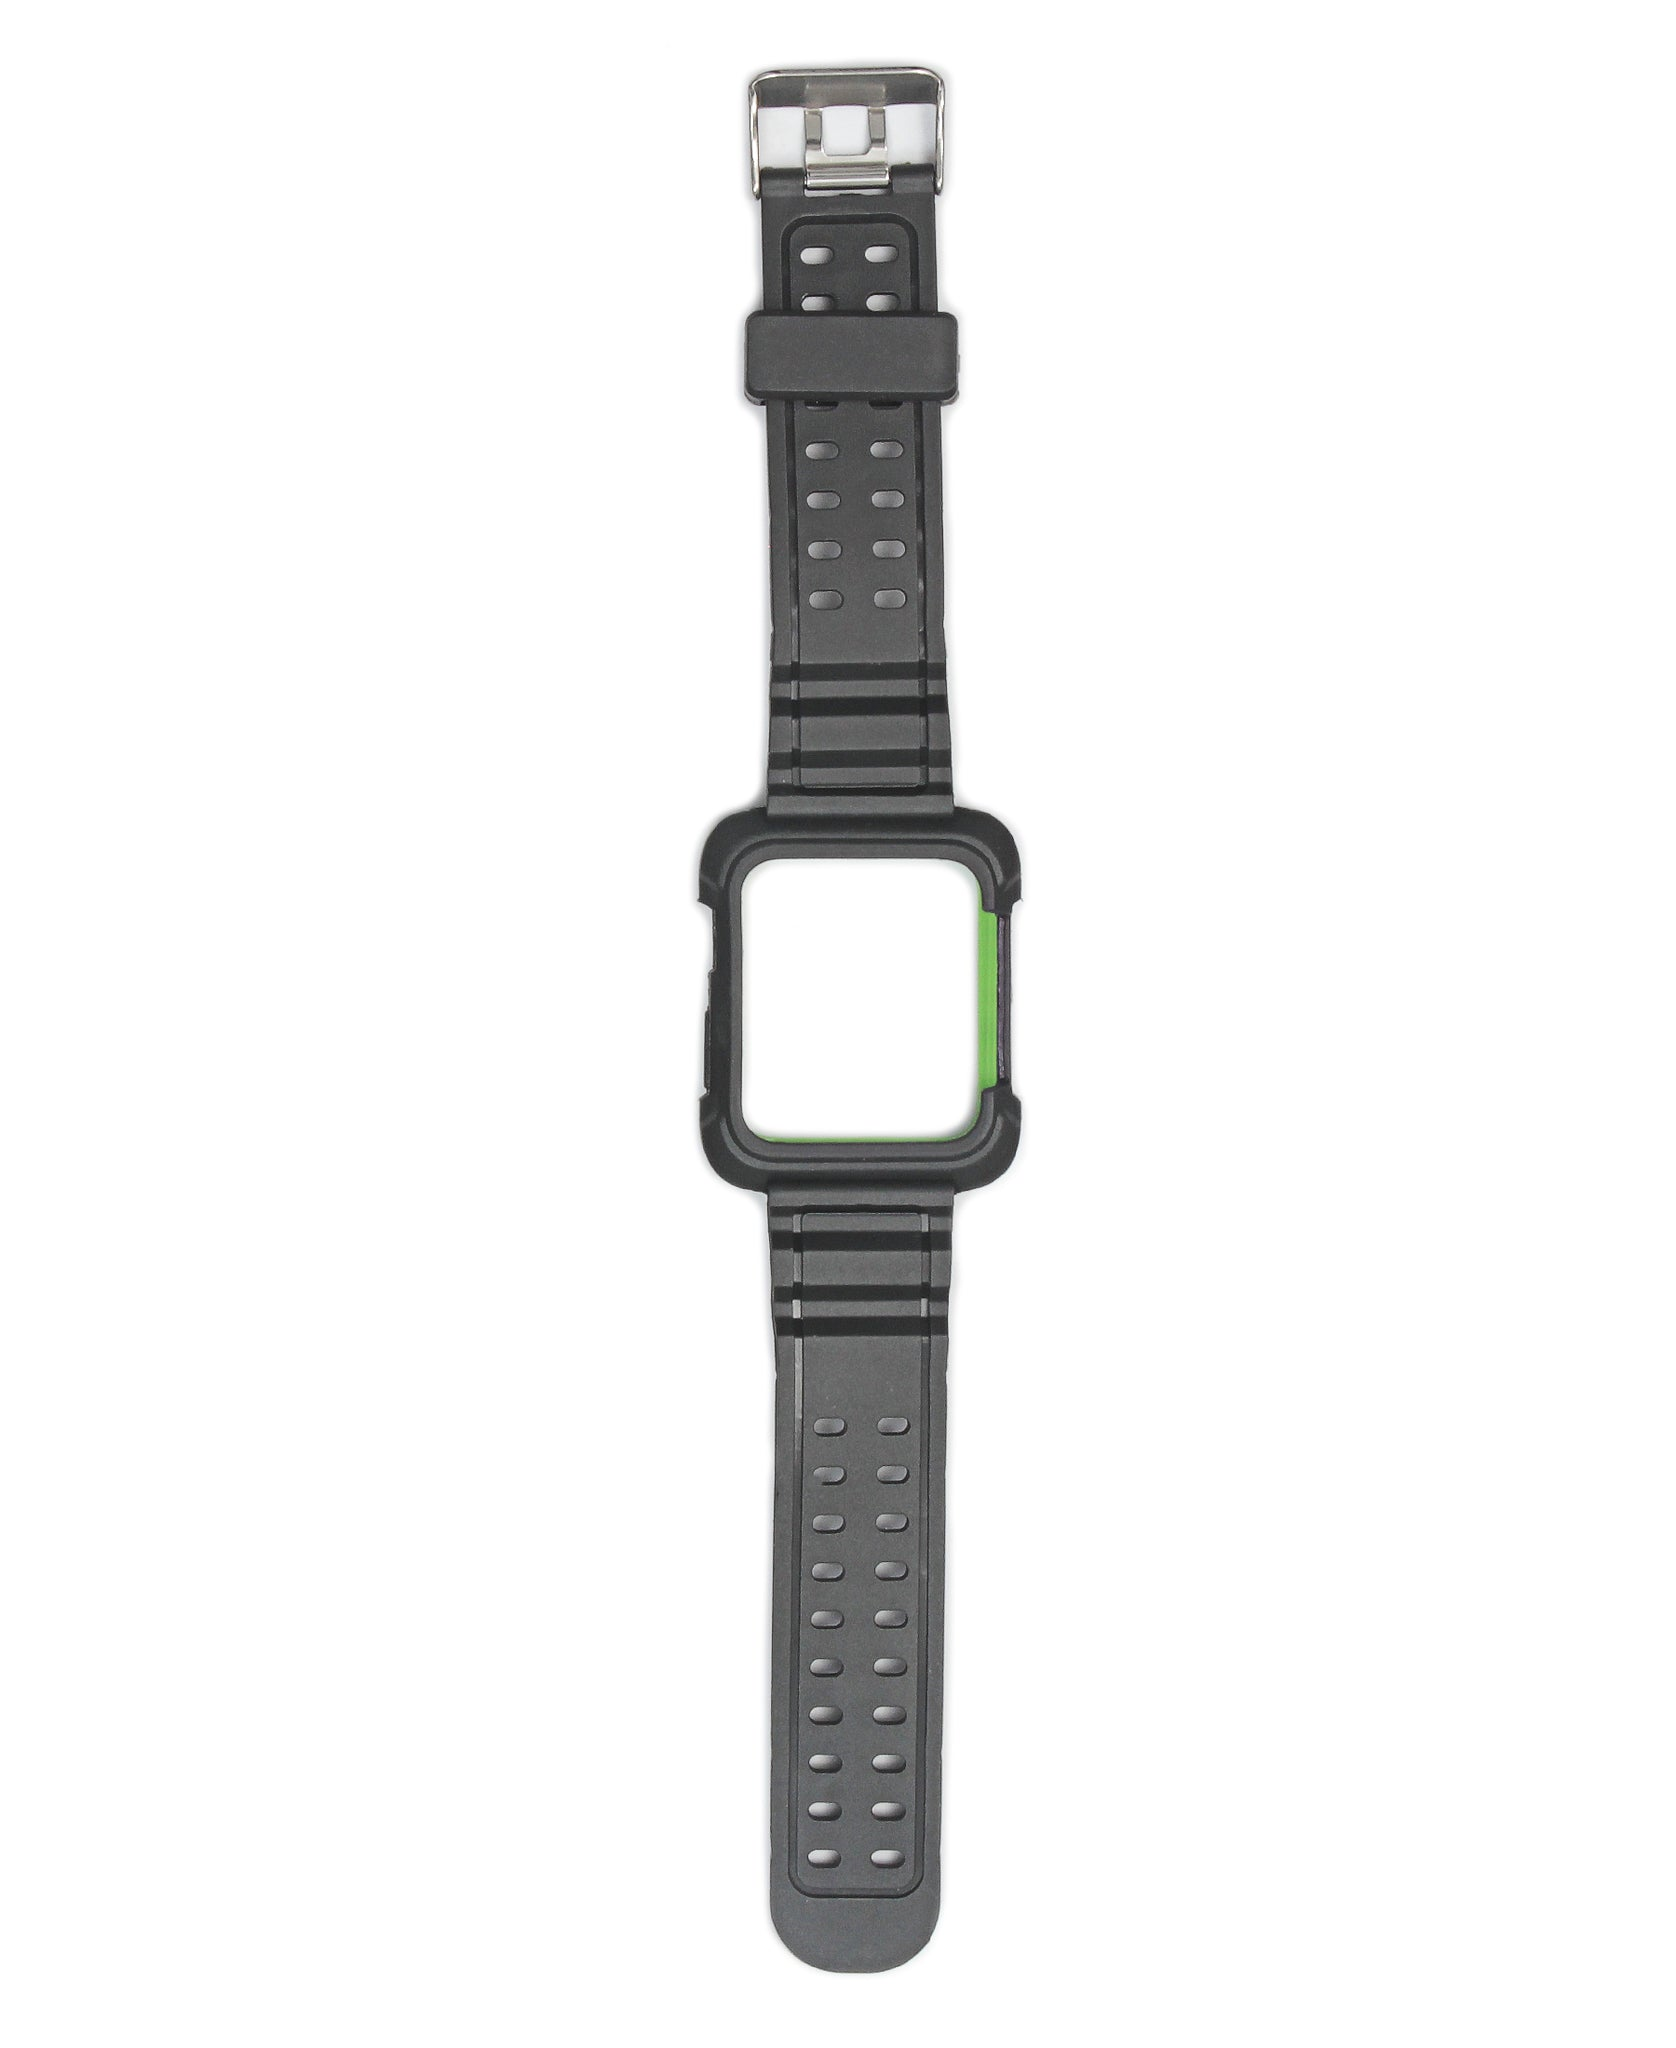 44mm Apple Watch Band With Cover - Green